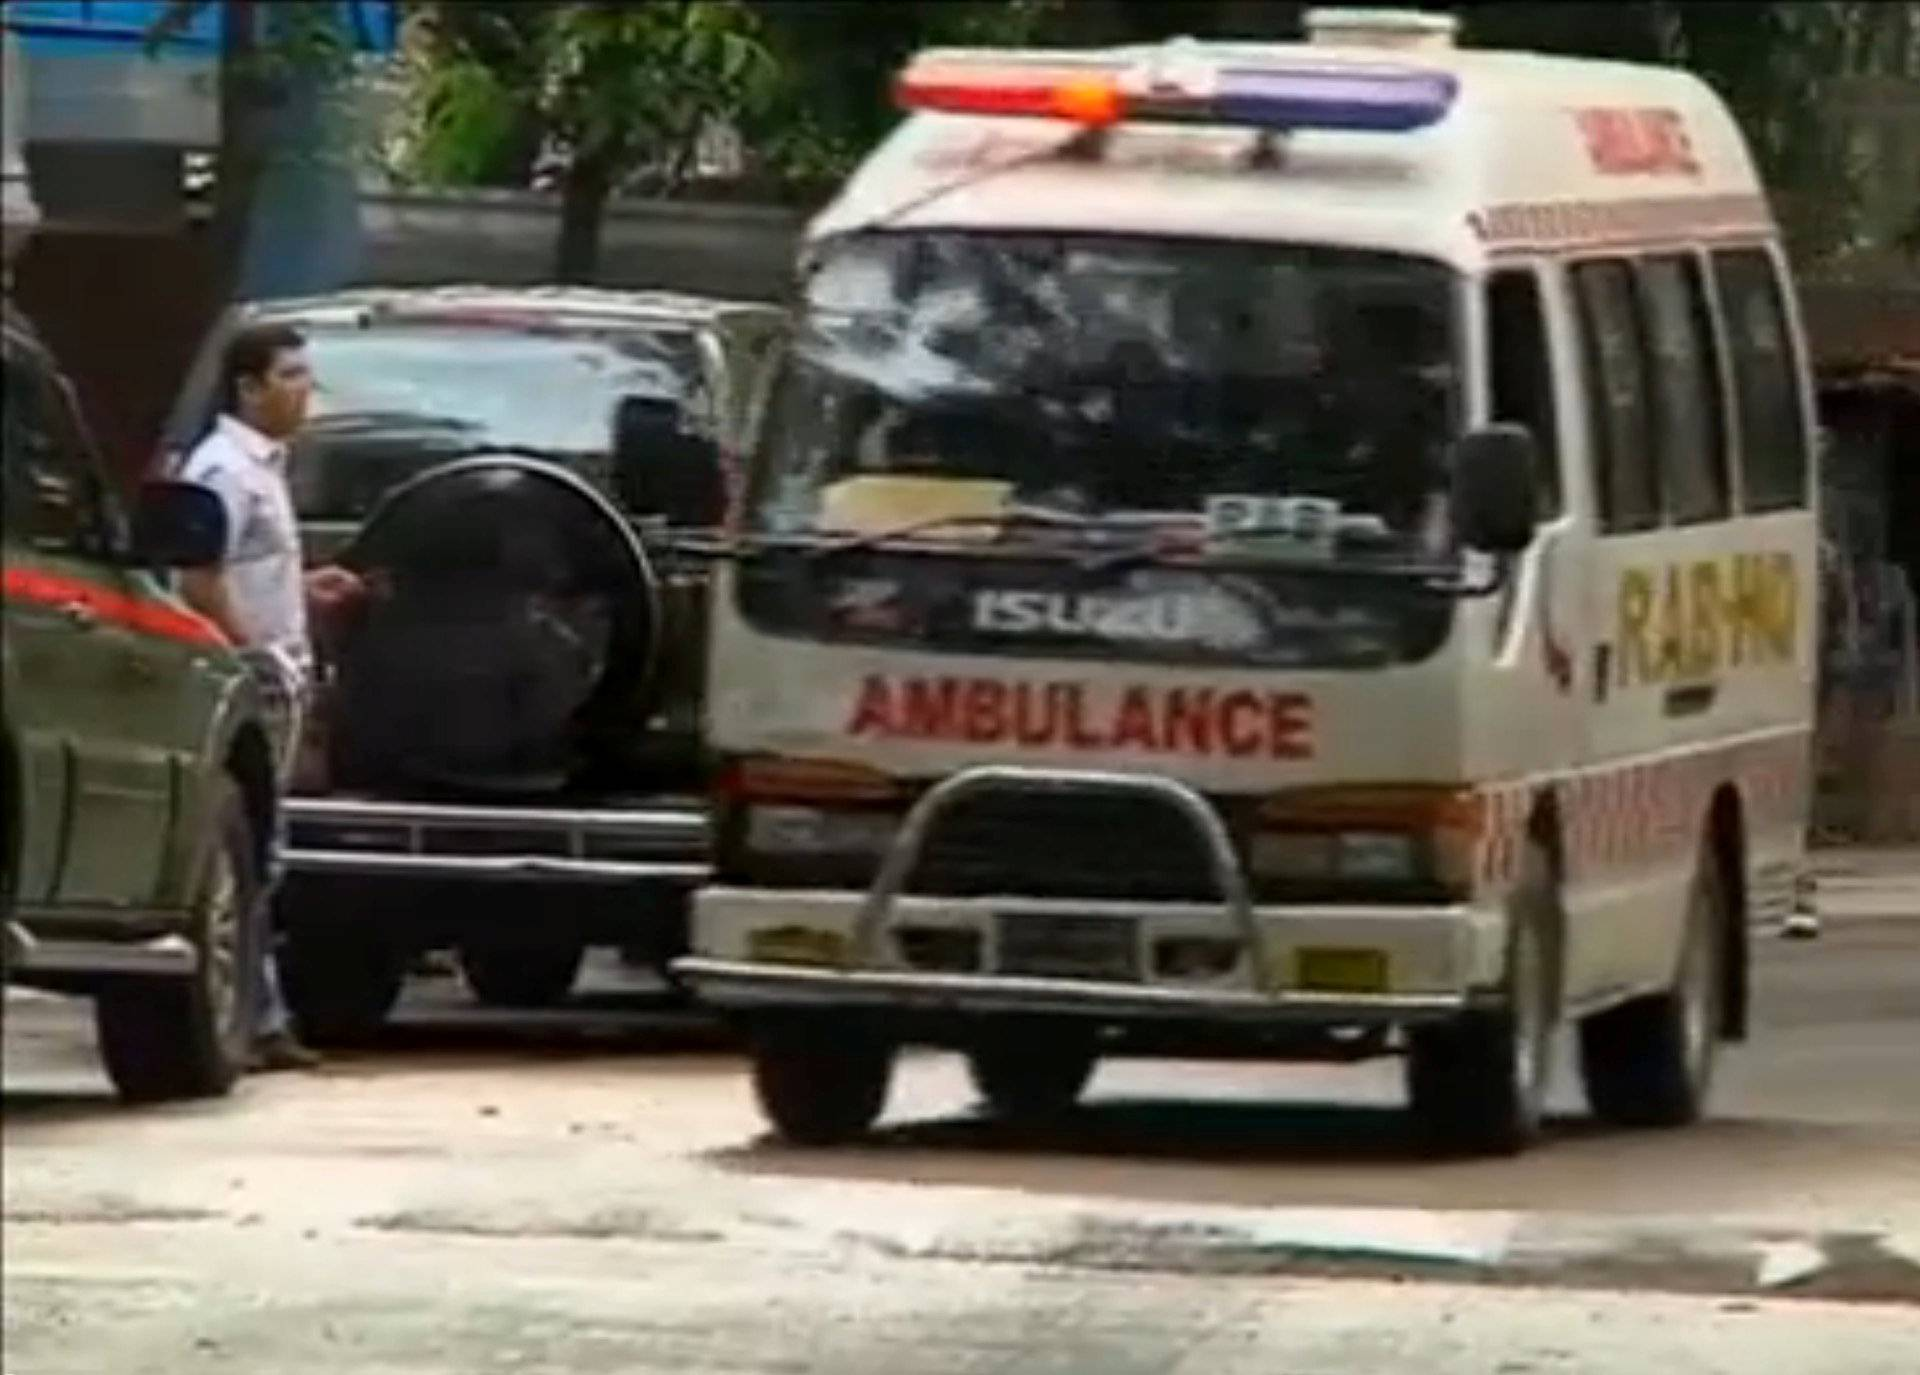 Still frame taken from video shows an ambulance after police stormed the Holey Artisan restaurant to rescue hostages, after gunmen attacked it and took hostages early on Saturday, in Dhaka